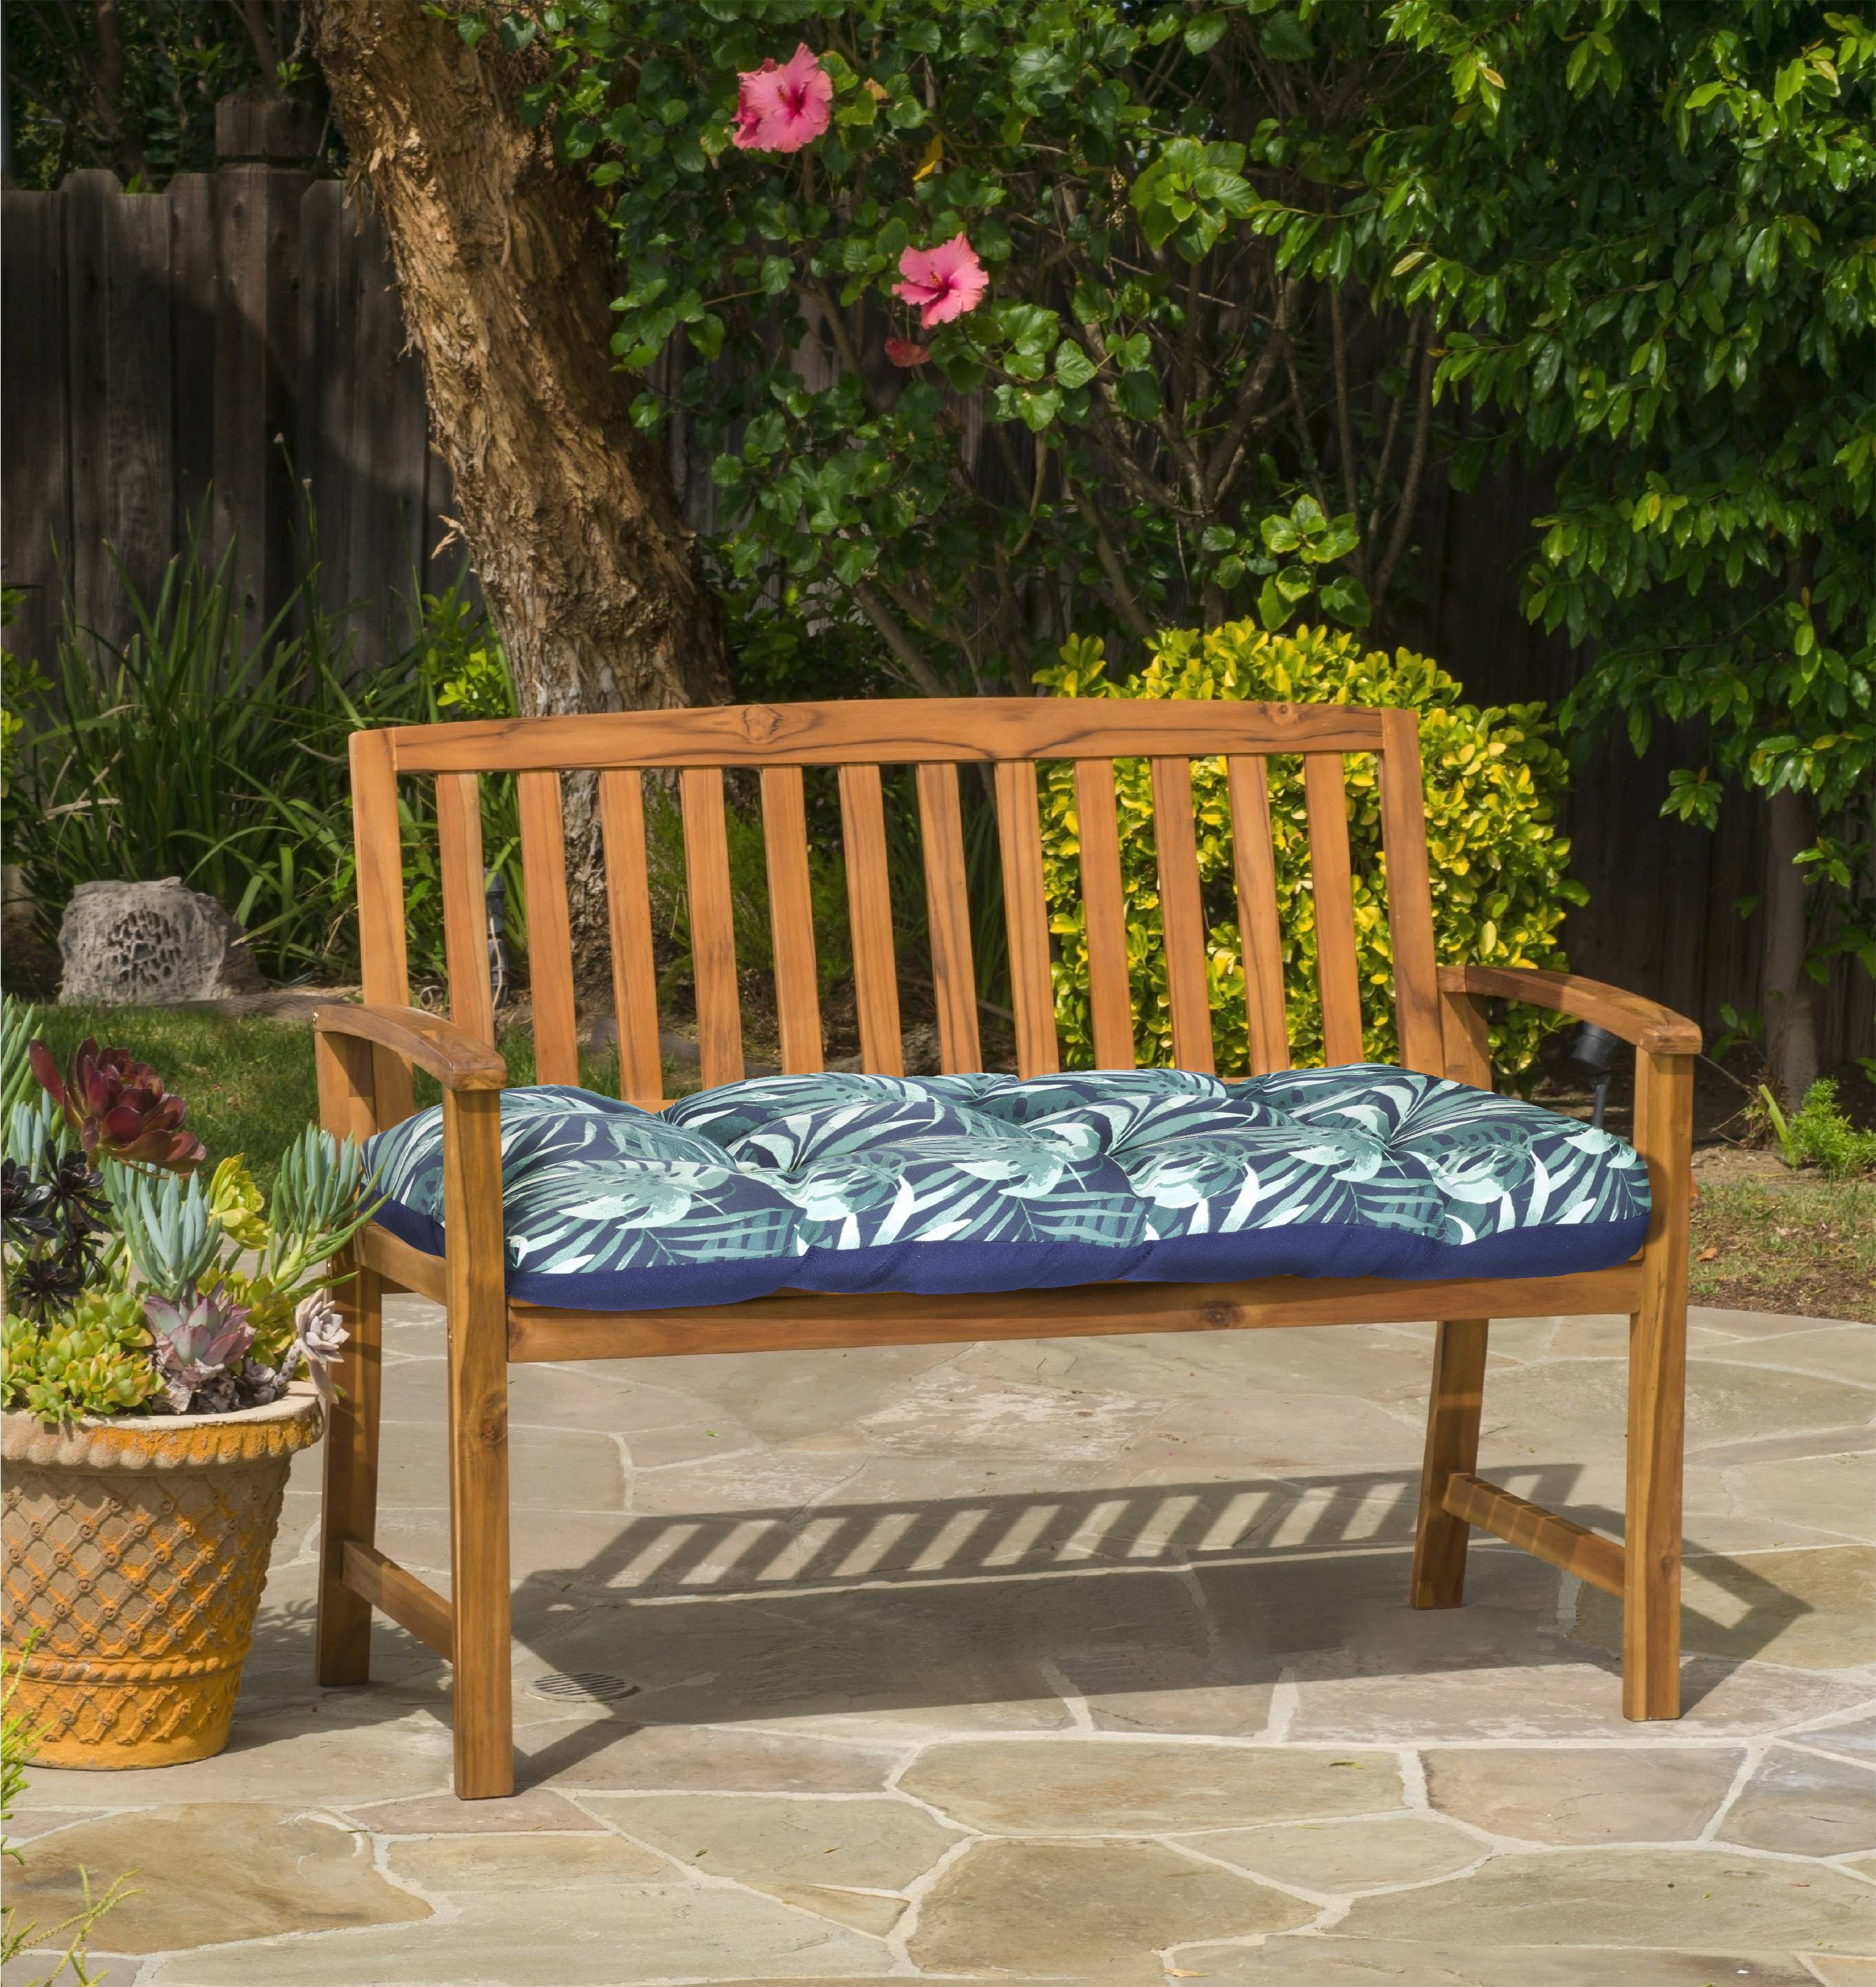 designer today needles home all inch cushion overstock bench outdoor garden product free weather blazing shipping